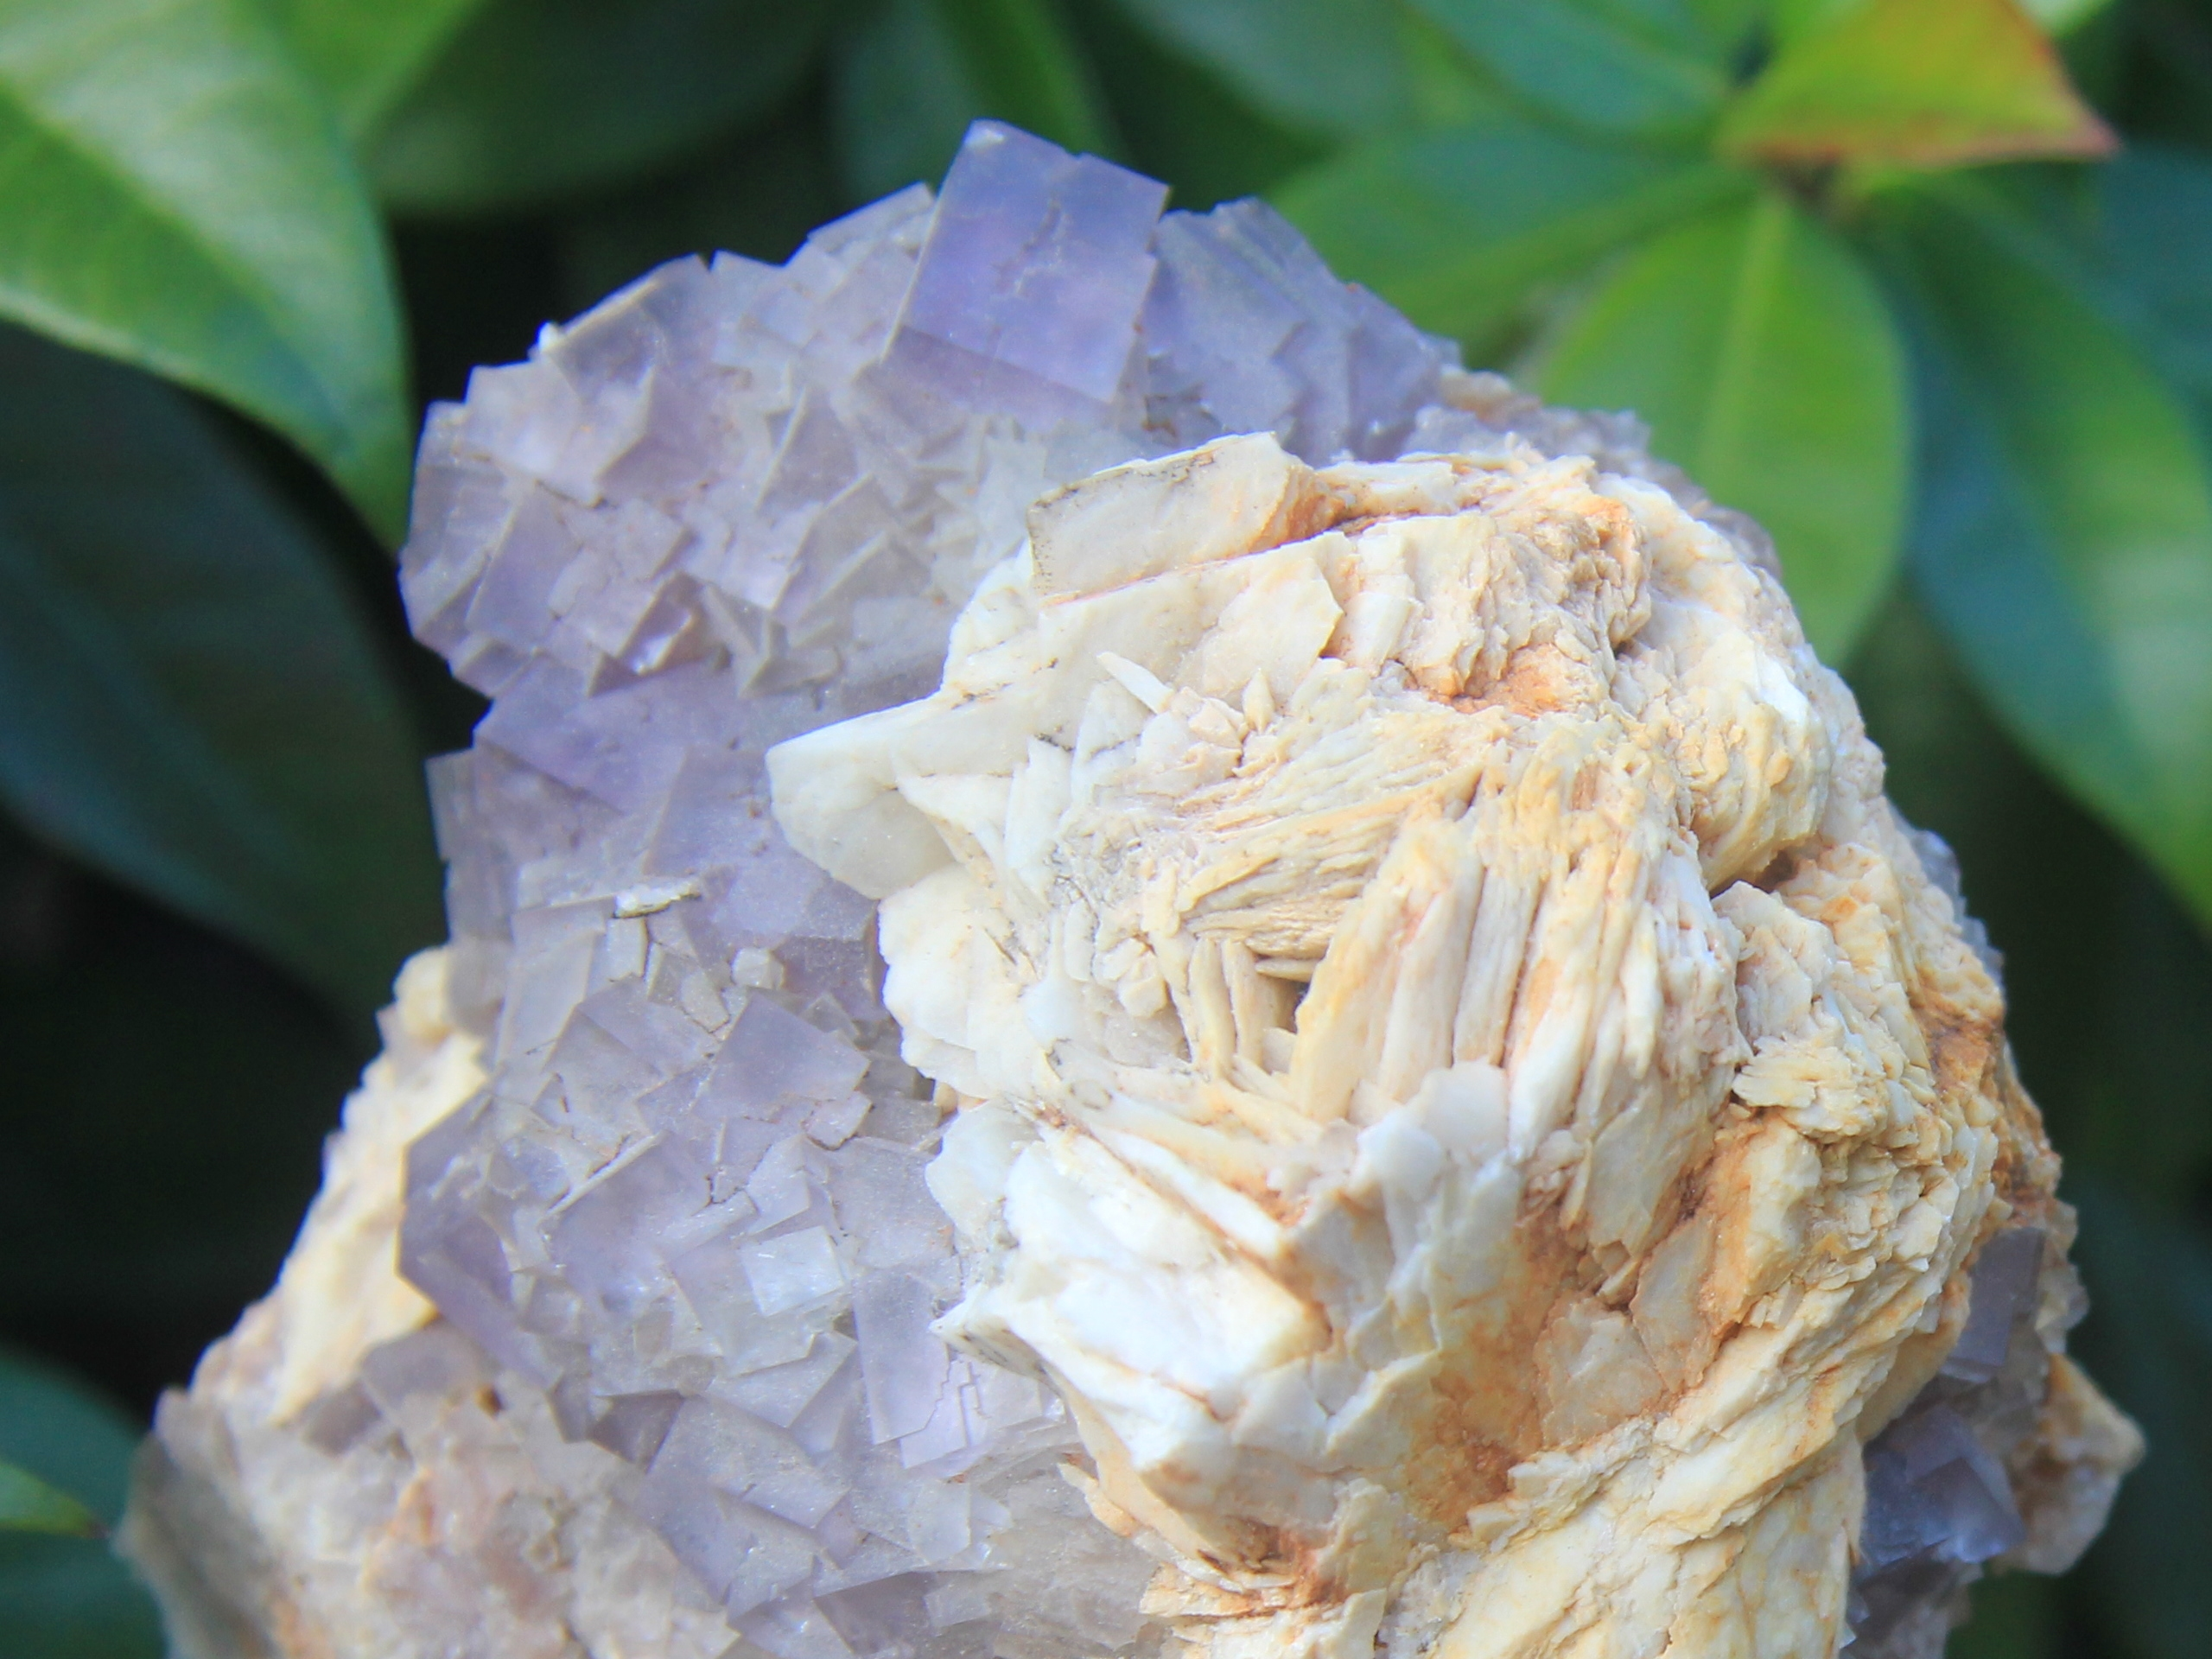 Fluorite and baryte